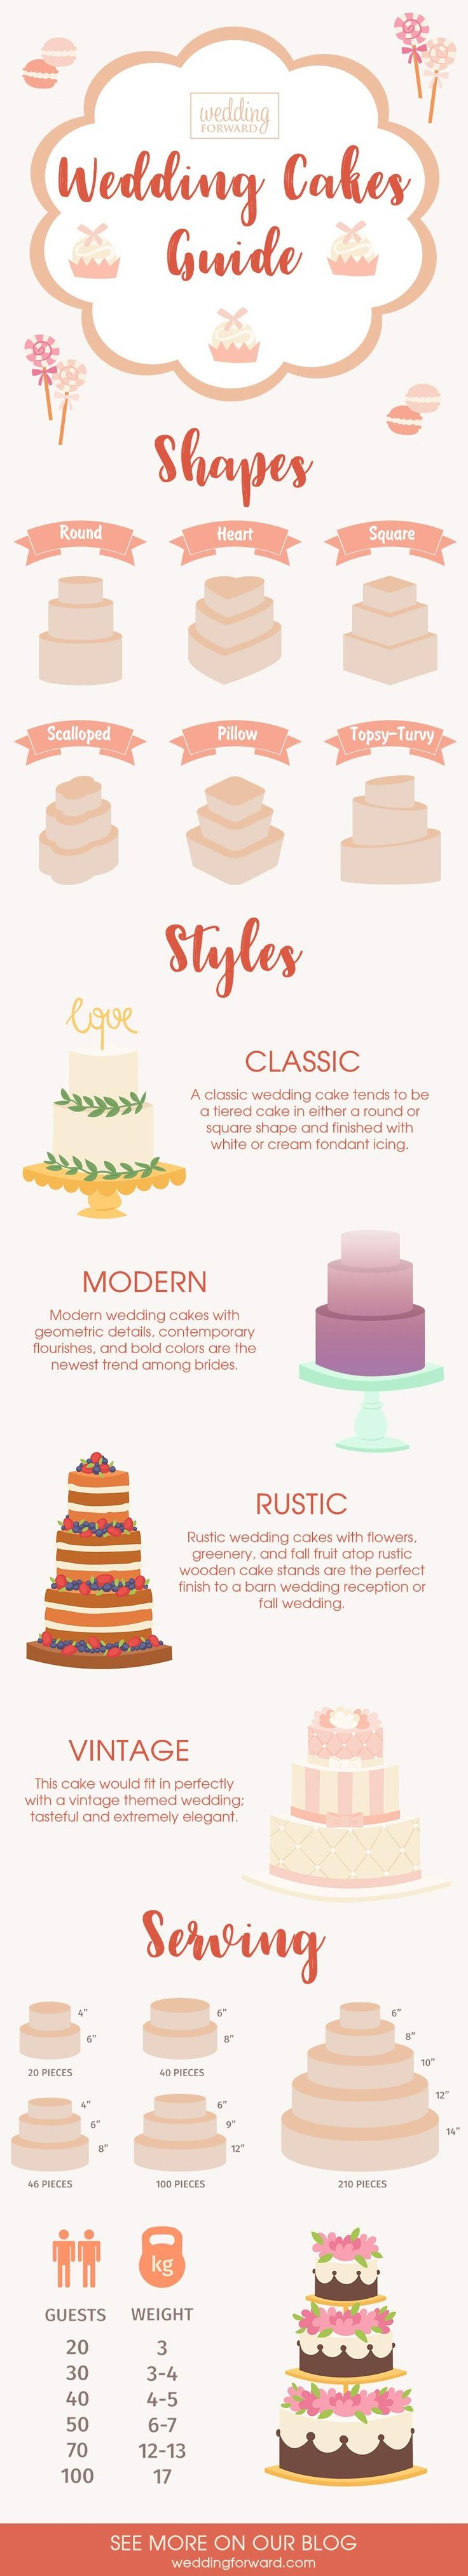 6 Wedding Planning Infographics: Useful Ideas & Tips ❤️ Our wedding infographics will help you to get everything organized and under control. Look at the wedding cakes guide. See more: http://www.weddingforward.com/wedding-planning-infographics/ #wedding #cakes #infographic #guide